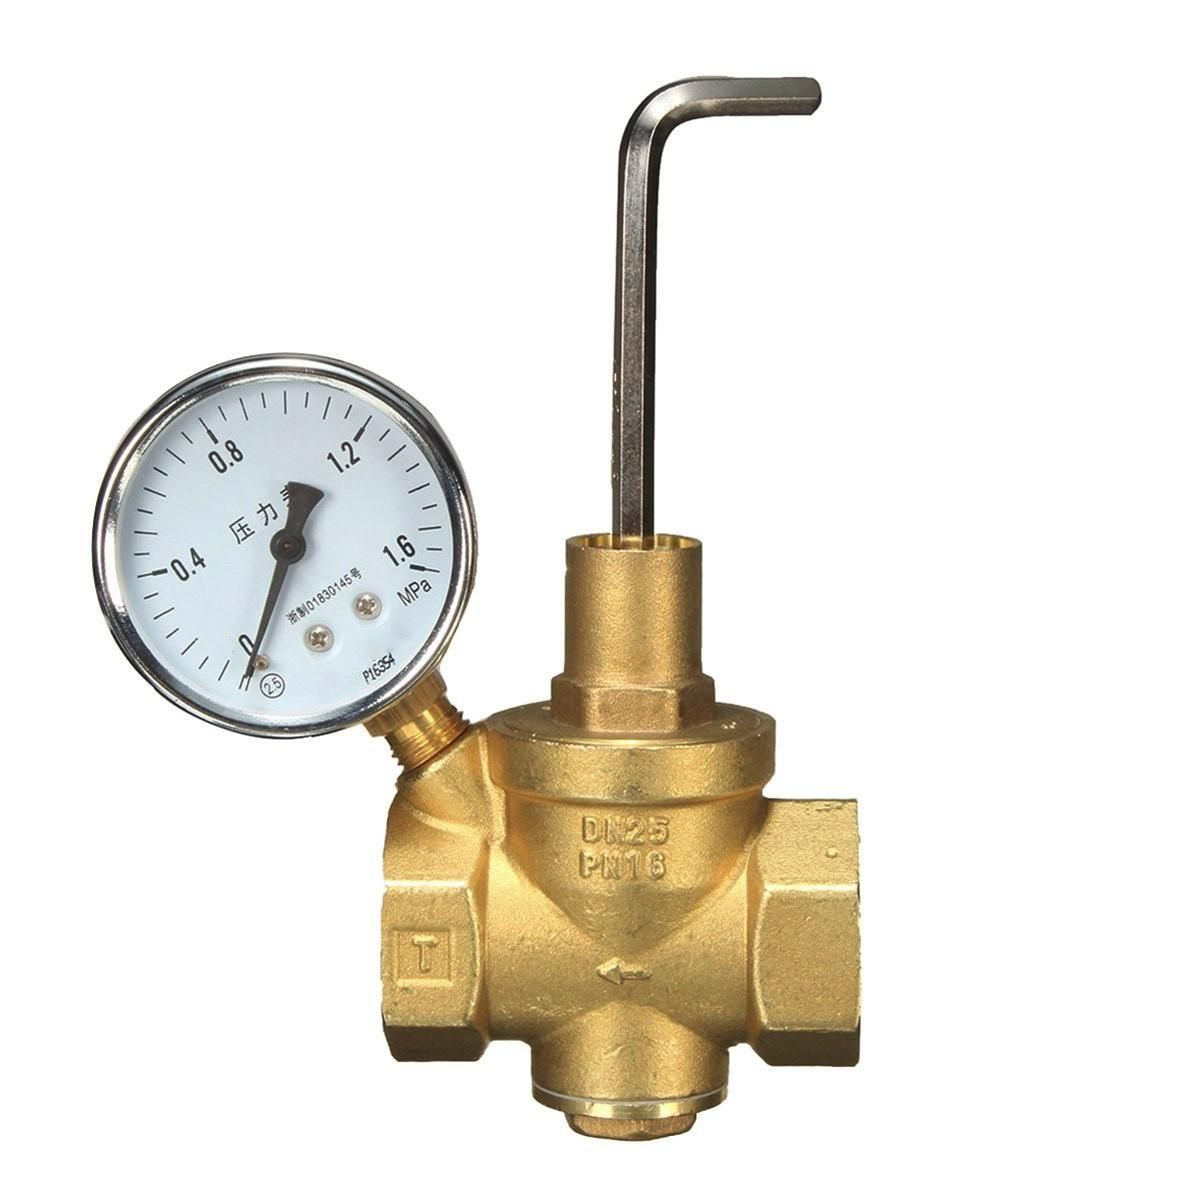 Us 35 71 Dn25 Brass Water Pressure Reducing Valve Gauge Pressure Gauge Water Flow Electrical Equipment Supplies From Tools Industrial Scientific On Banggoo In 2020 Water Flow Pressure Gauge Valve